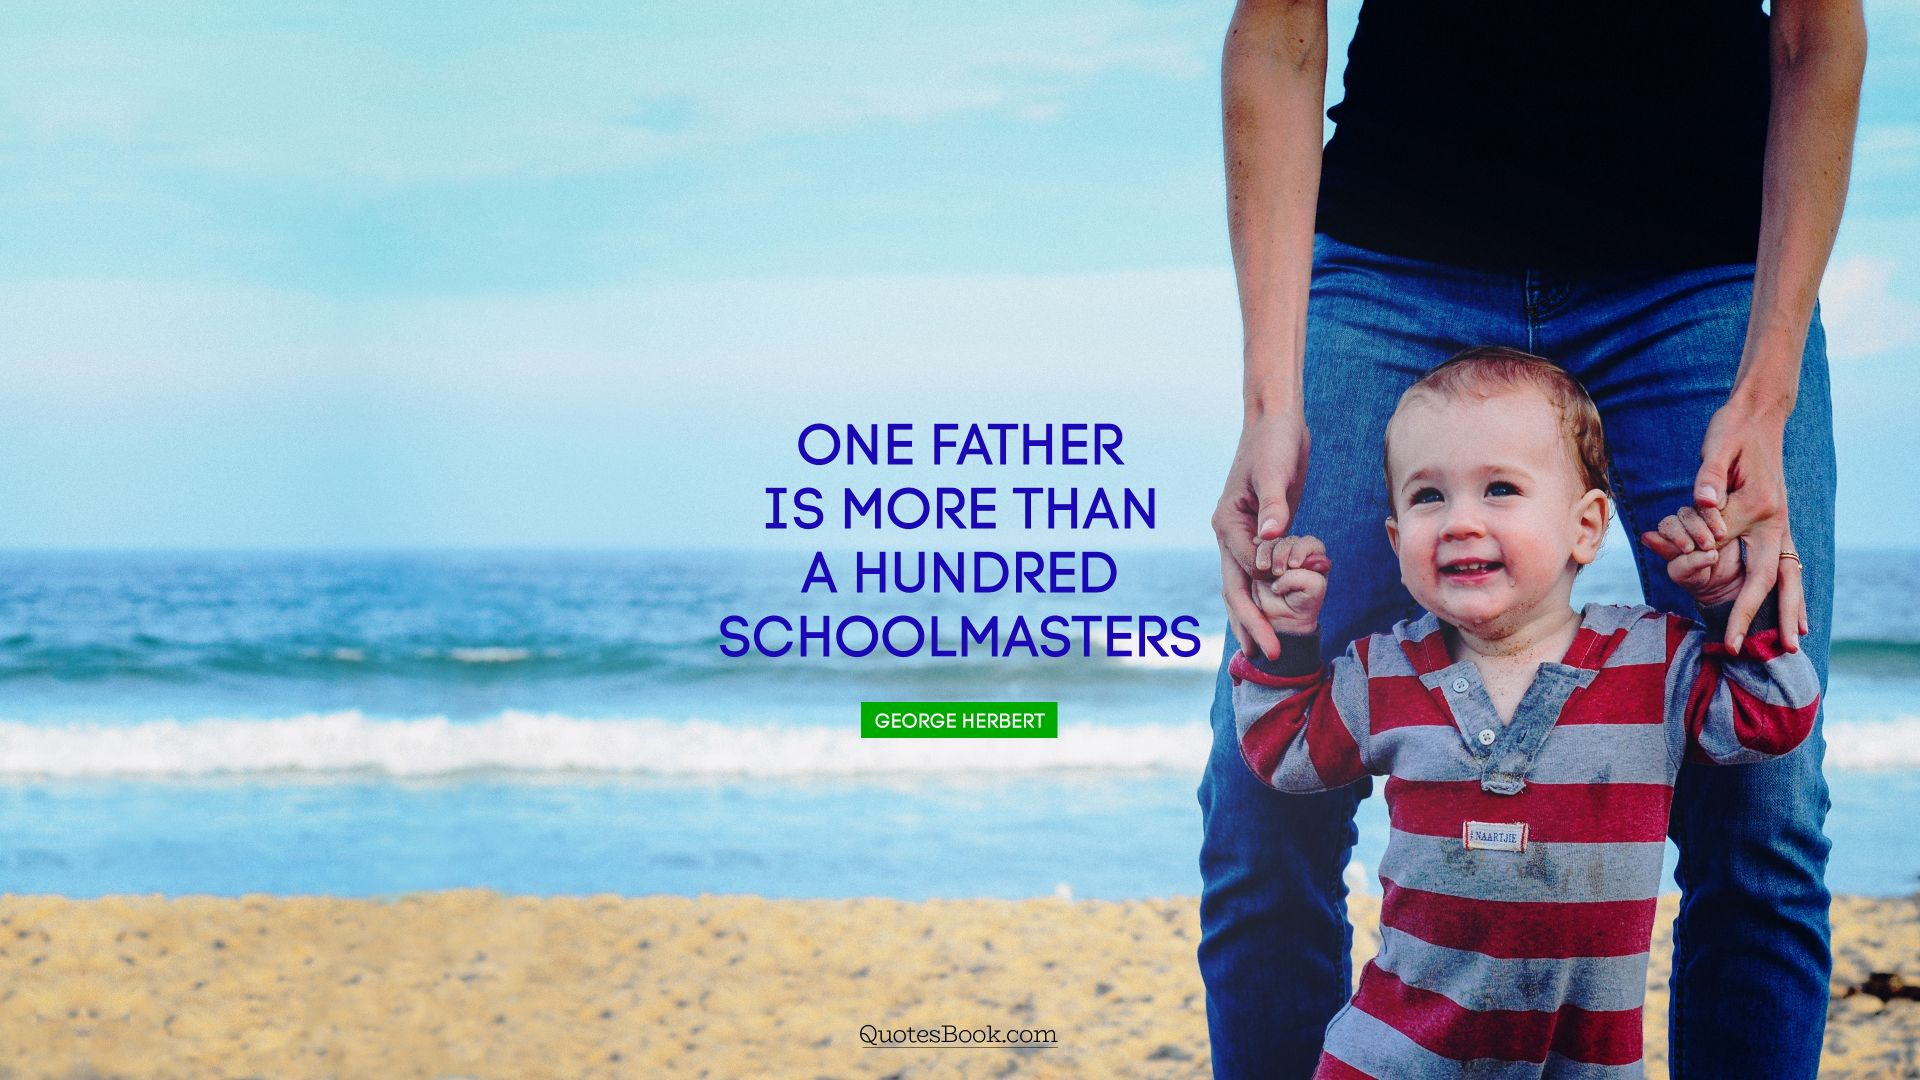 One father is more than a hundred schoolmasters. - Quote by George Herbert